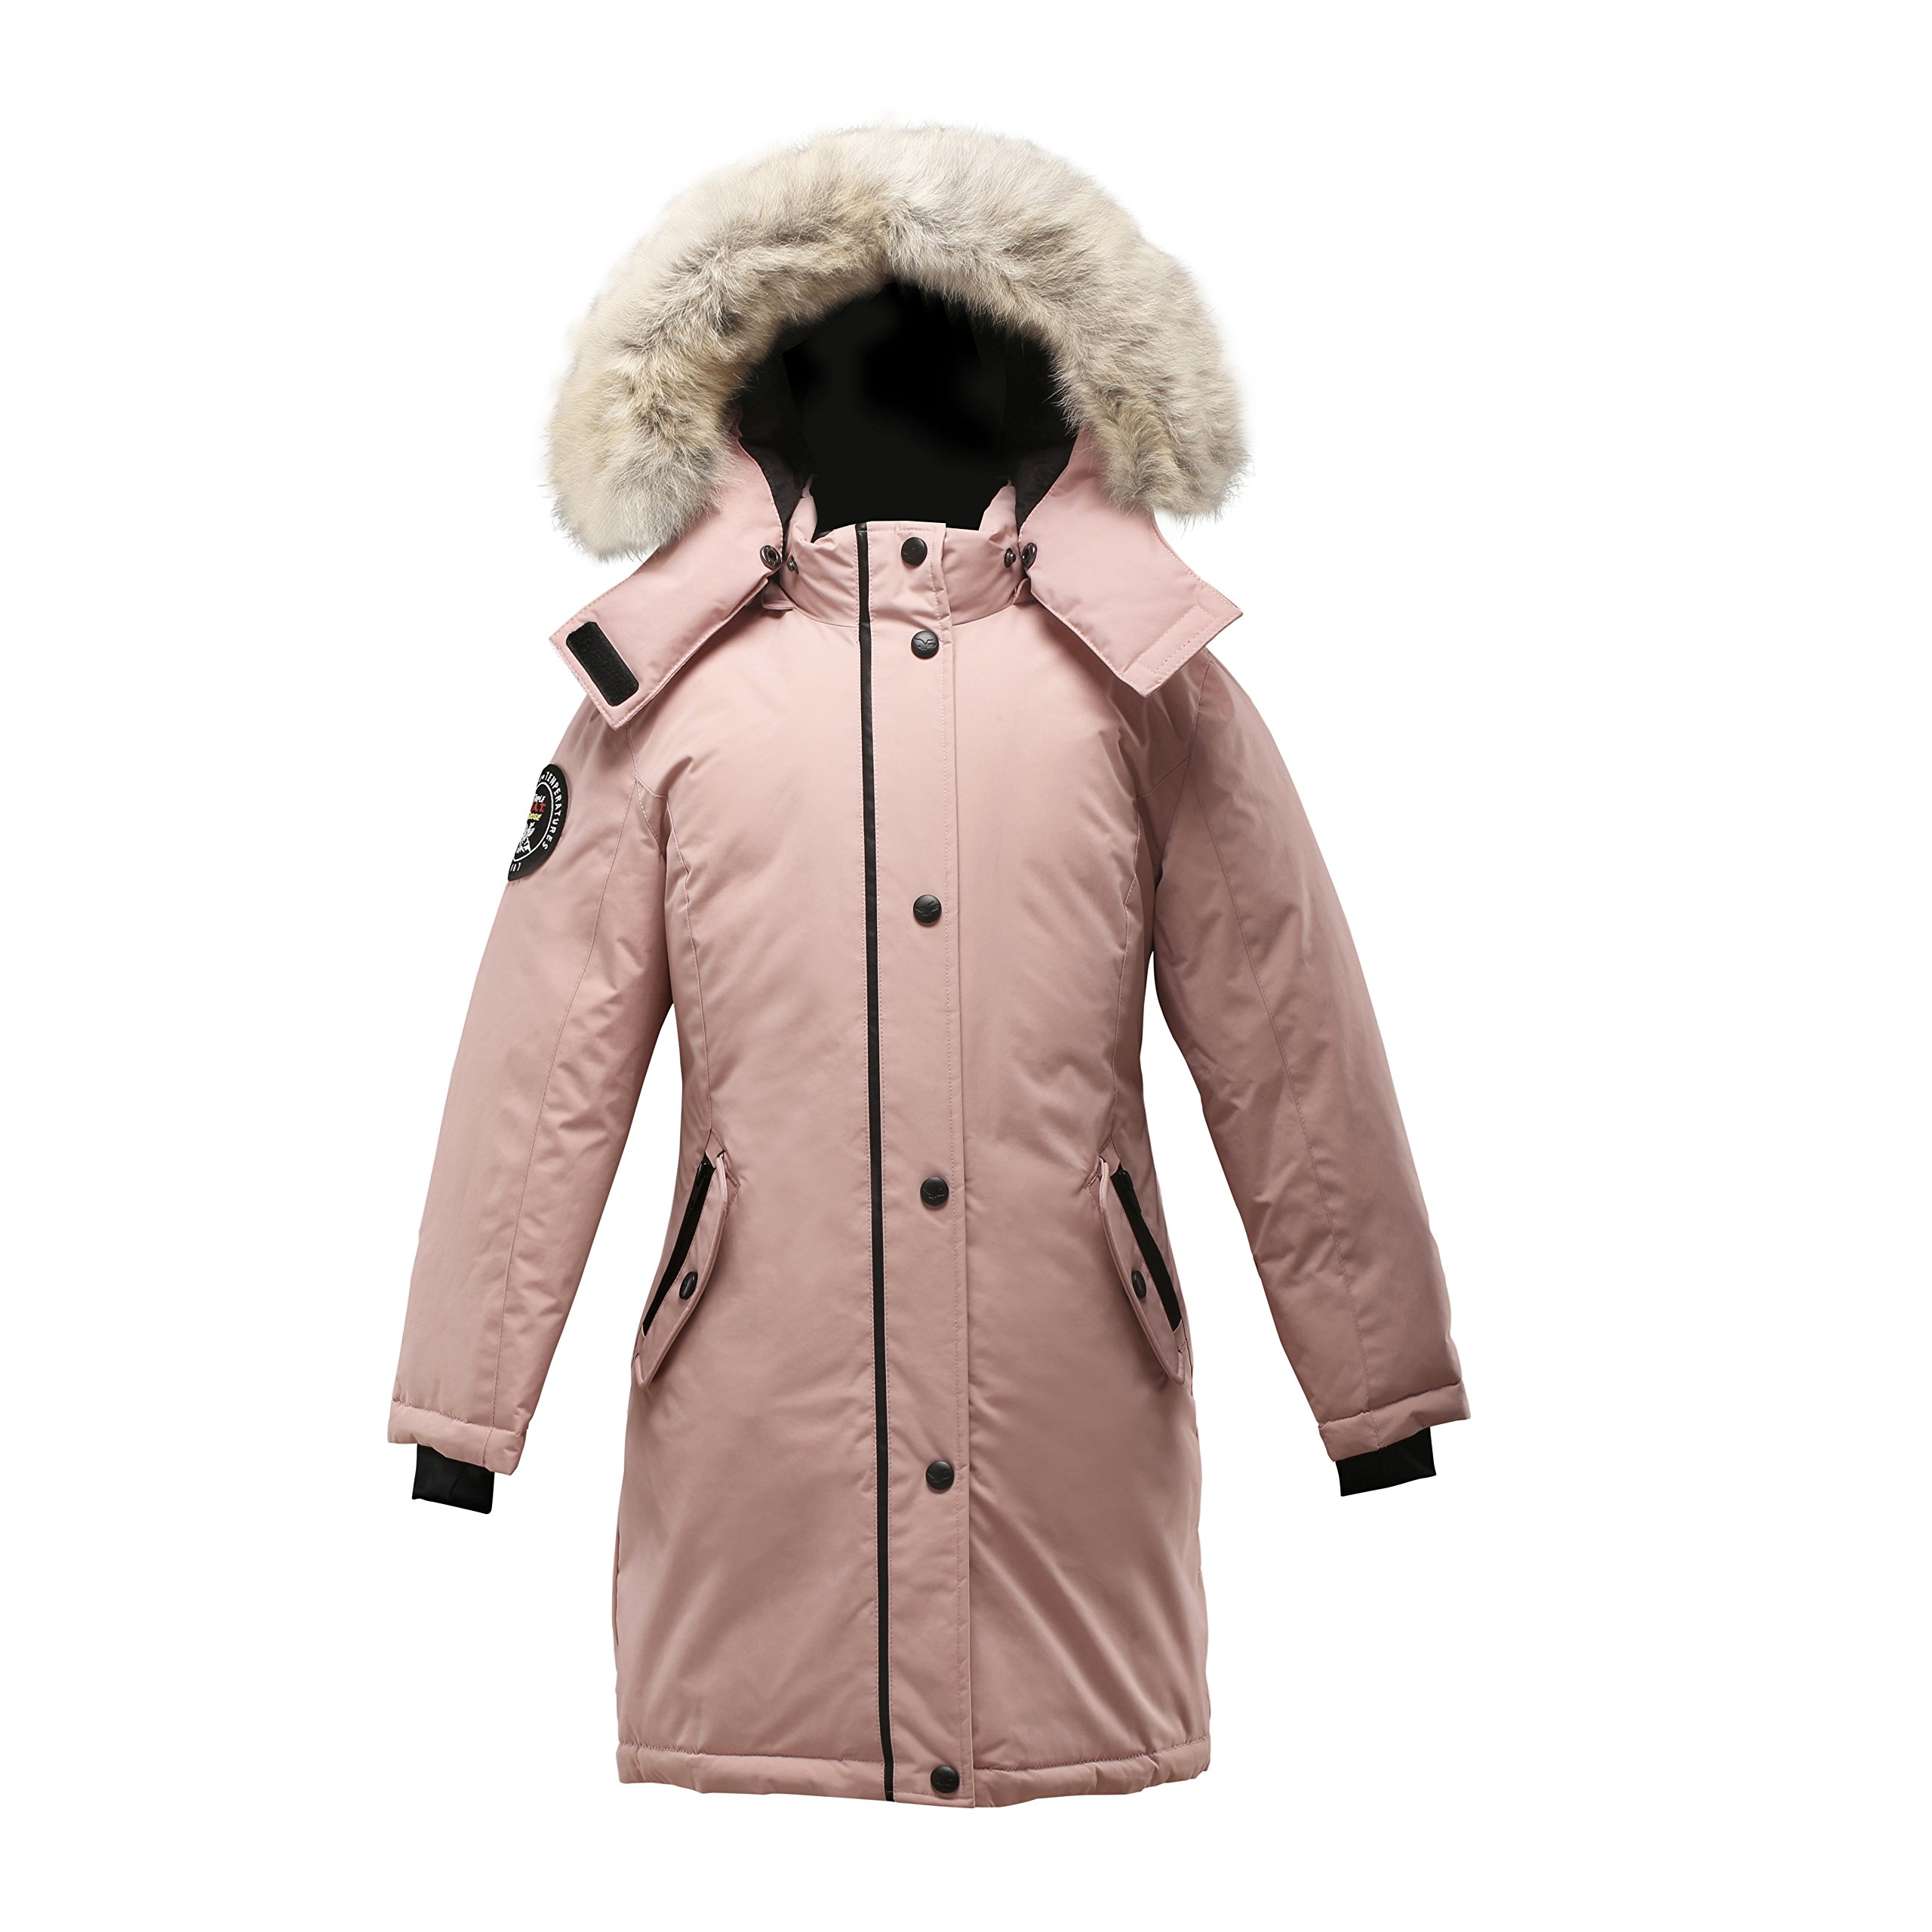 Triple F.A.T. Goose Alistair Girls Down Jacket Parka With Real Coyote Fur (14, Pink)